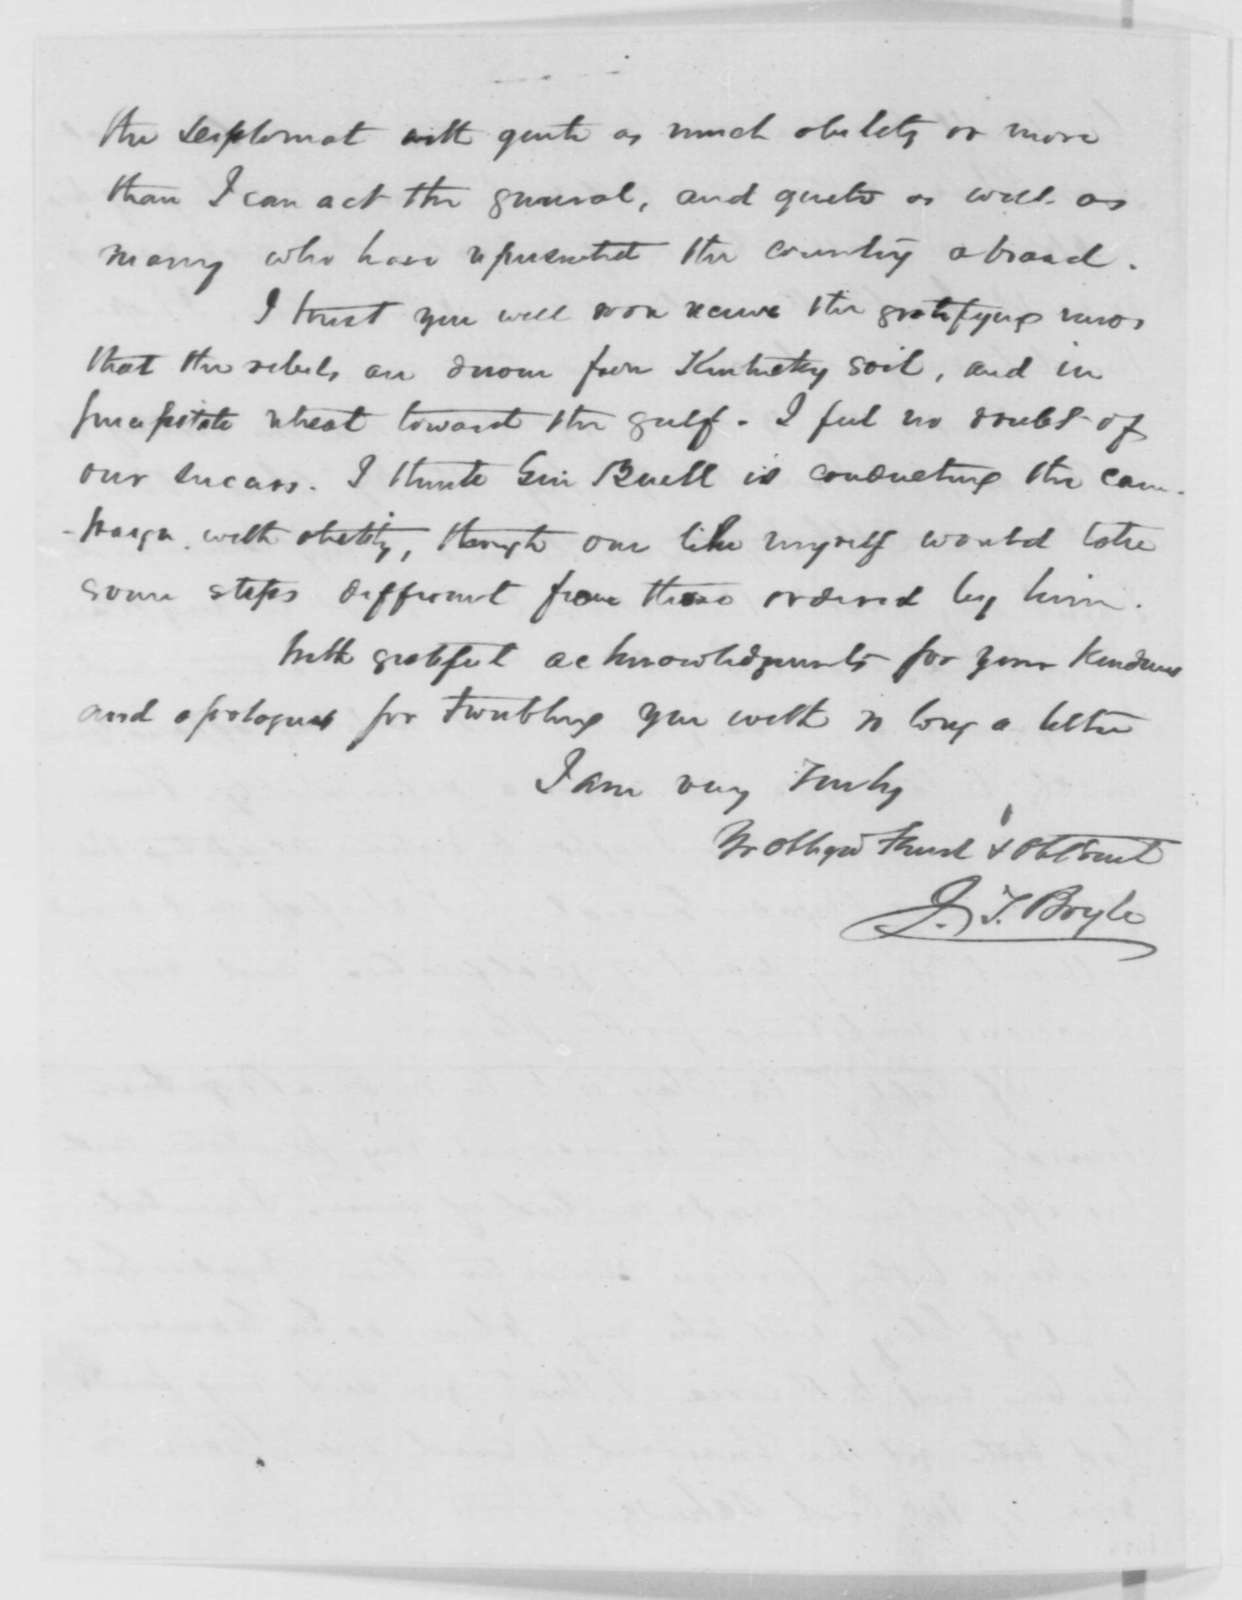 Jeremiah T. Boyle to Garrett Davis, Monday, January 20, 1862  (Political and military affairs in Kentucky)